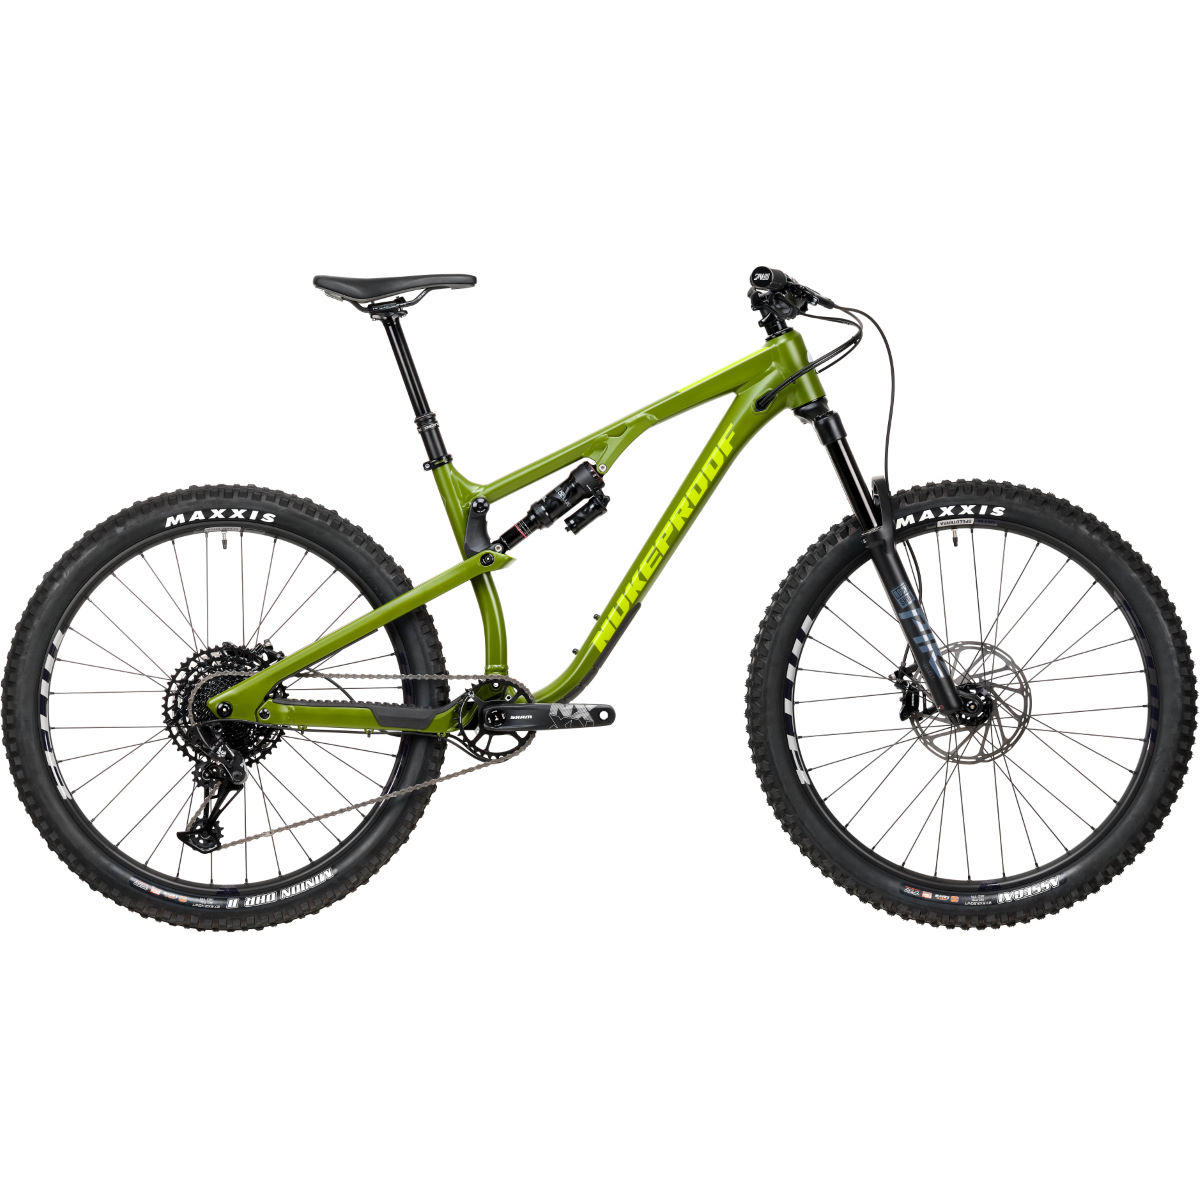 Nukeproof Reactor 275 Expert Alloy Bike (NX Eagle - 2020)